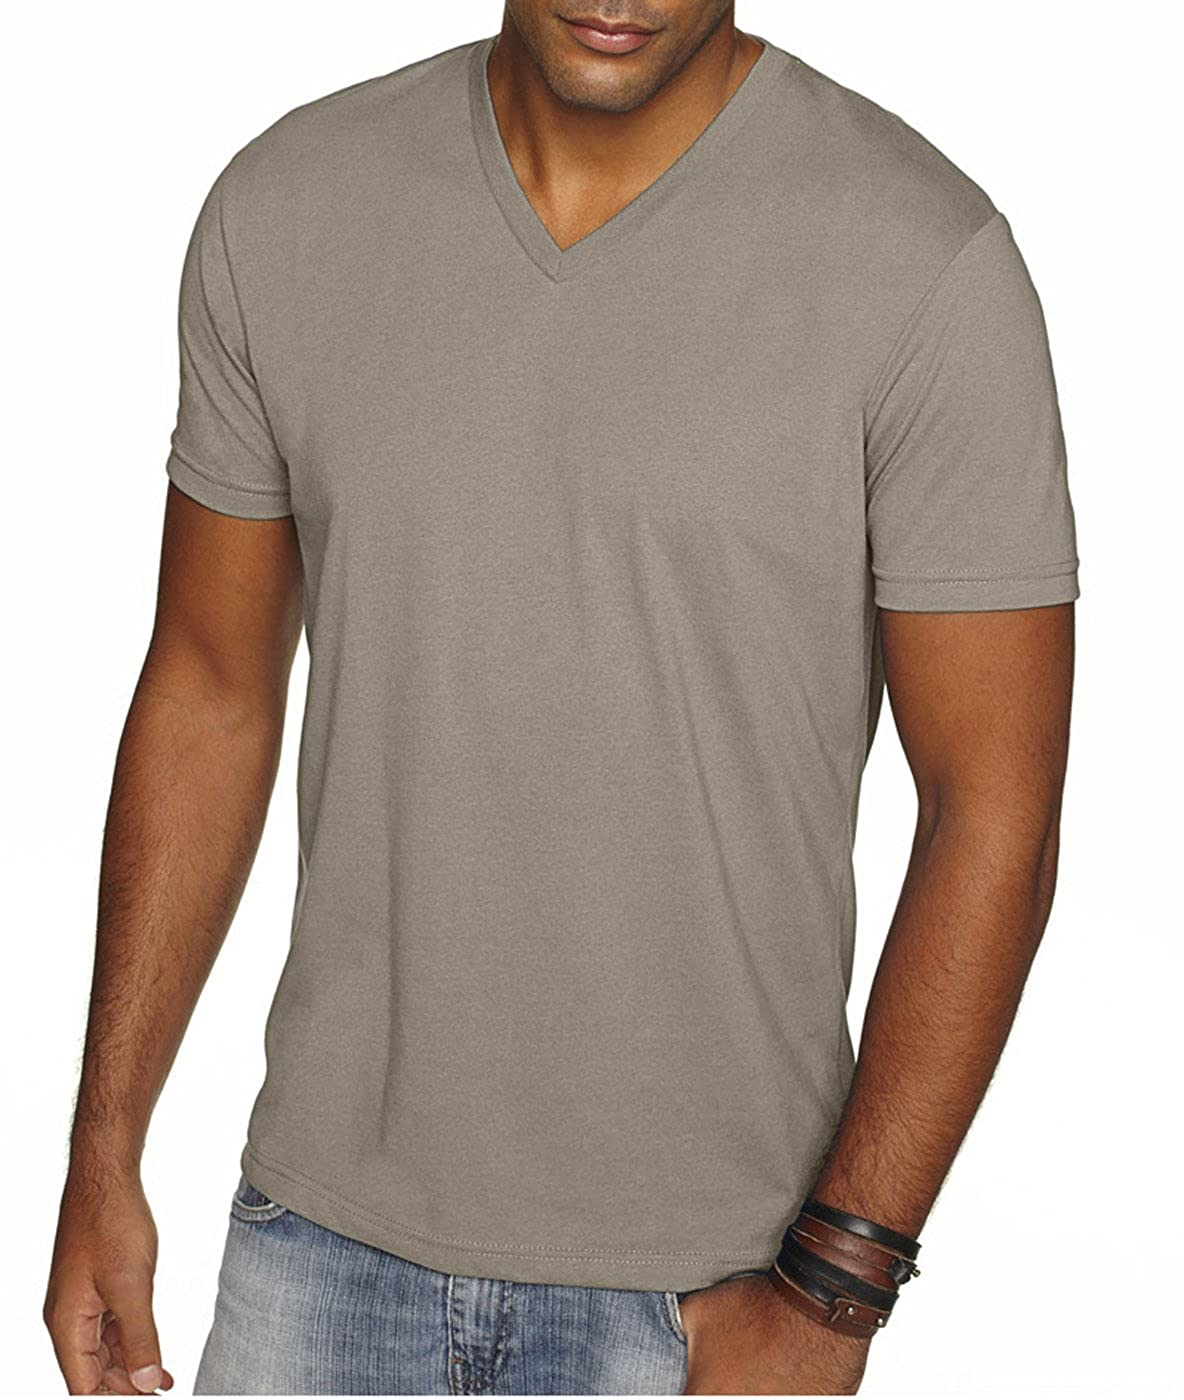 2 Shirts Warm Grey - Small Cool Blue Next Level Apparel 6440 Mens Premium Fitted Sueded V-Neck Tee -2 Pack